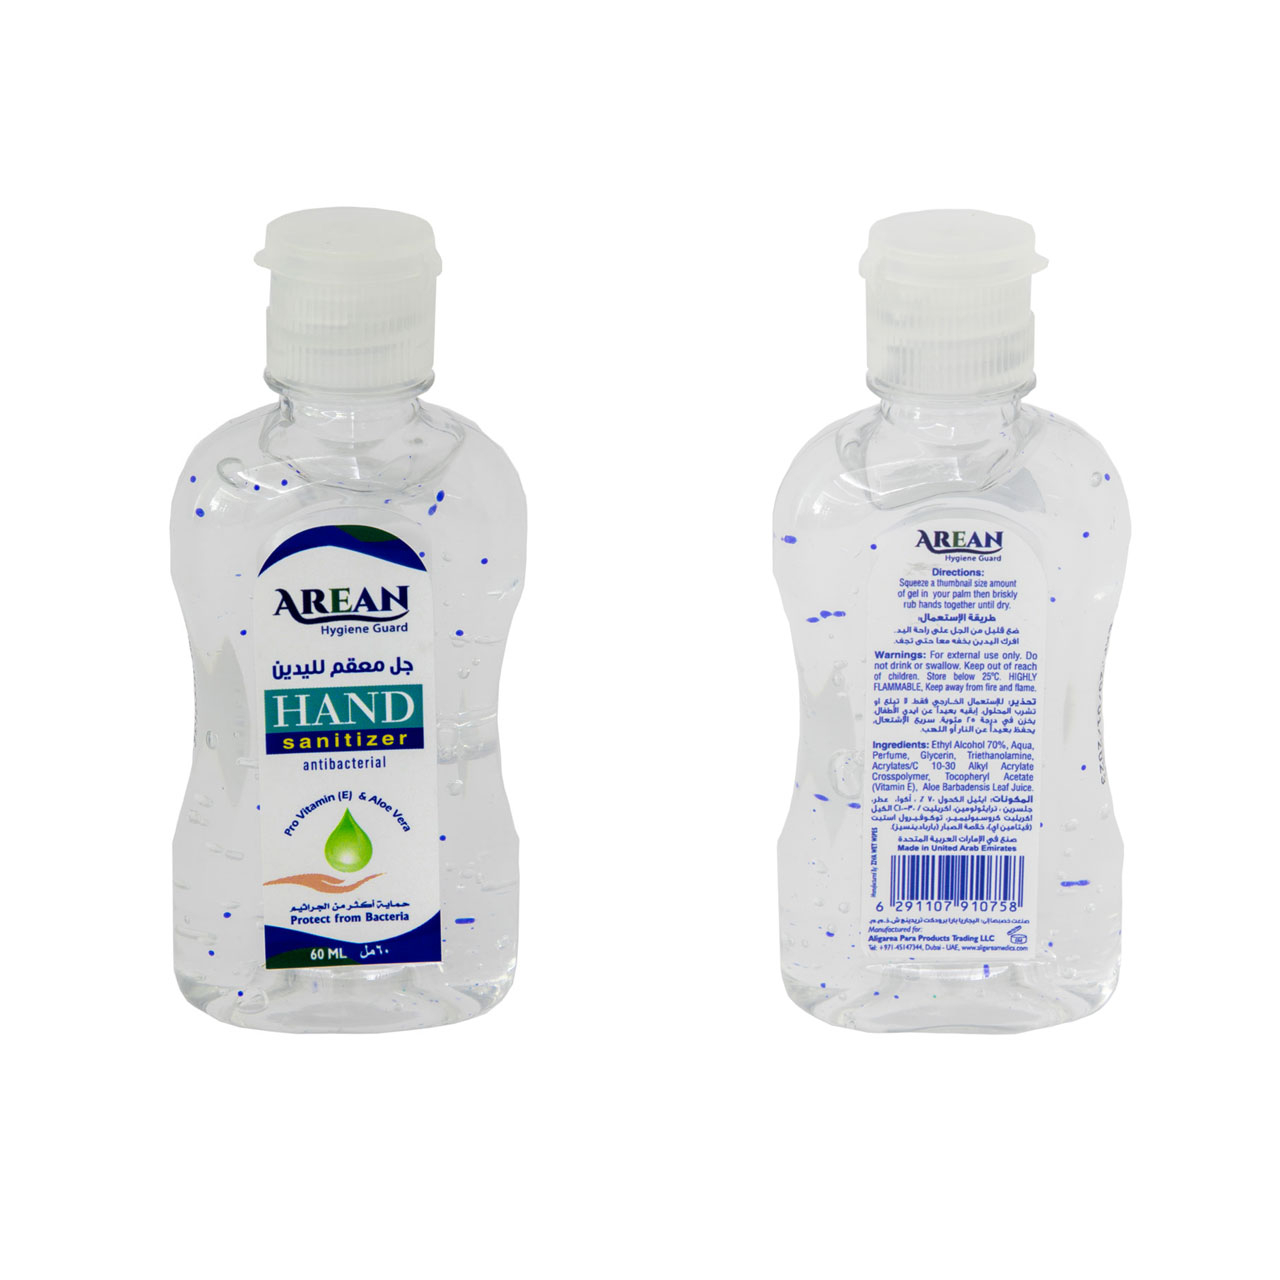 Arean gel hand sanitizer with fragrance 60ml